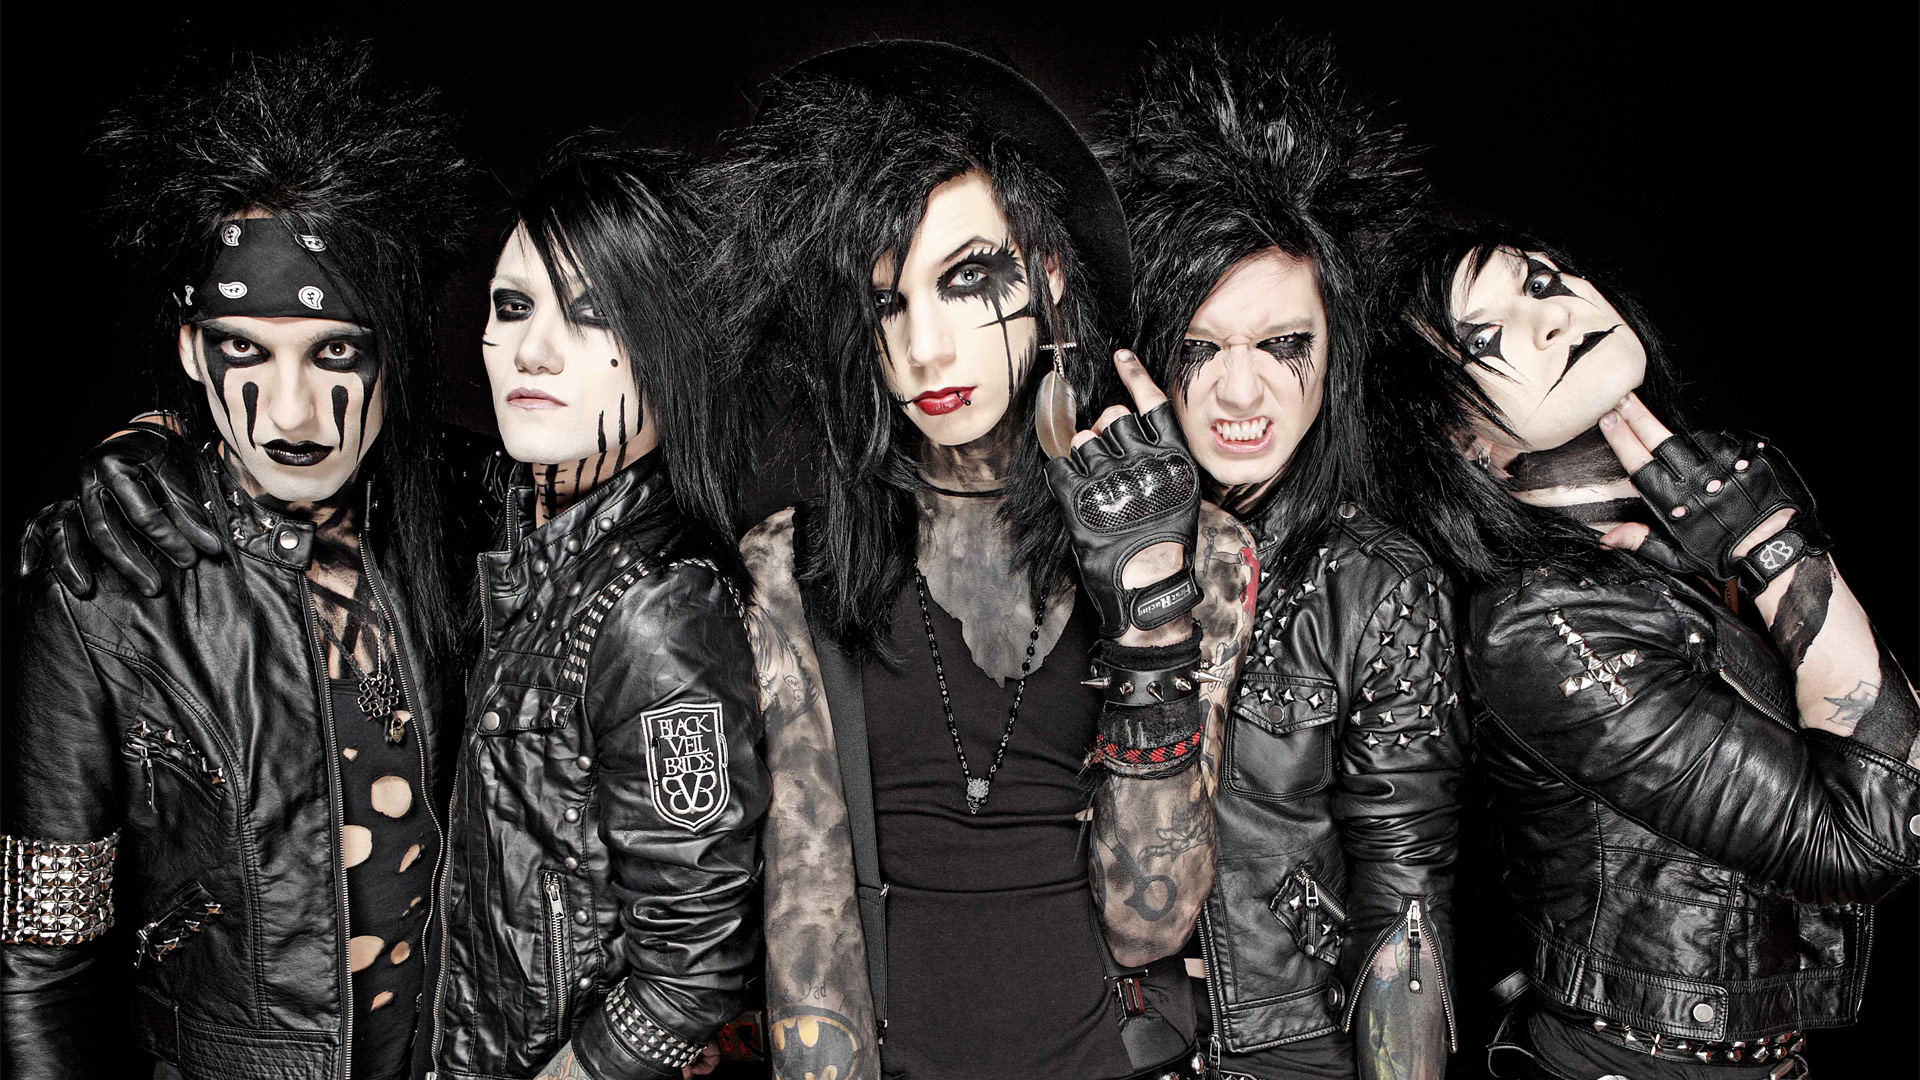 Black Veil Brides backdrop wallpaper 1920x1080